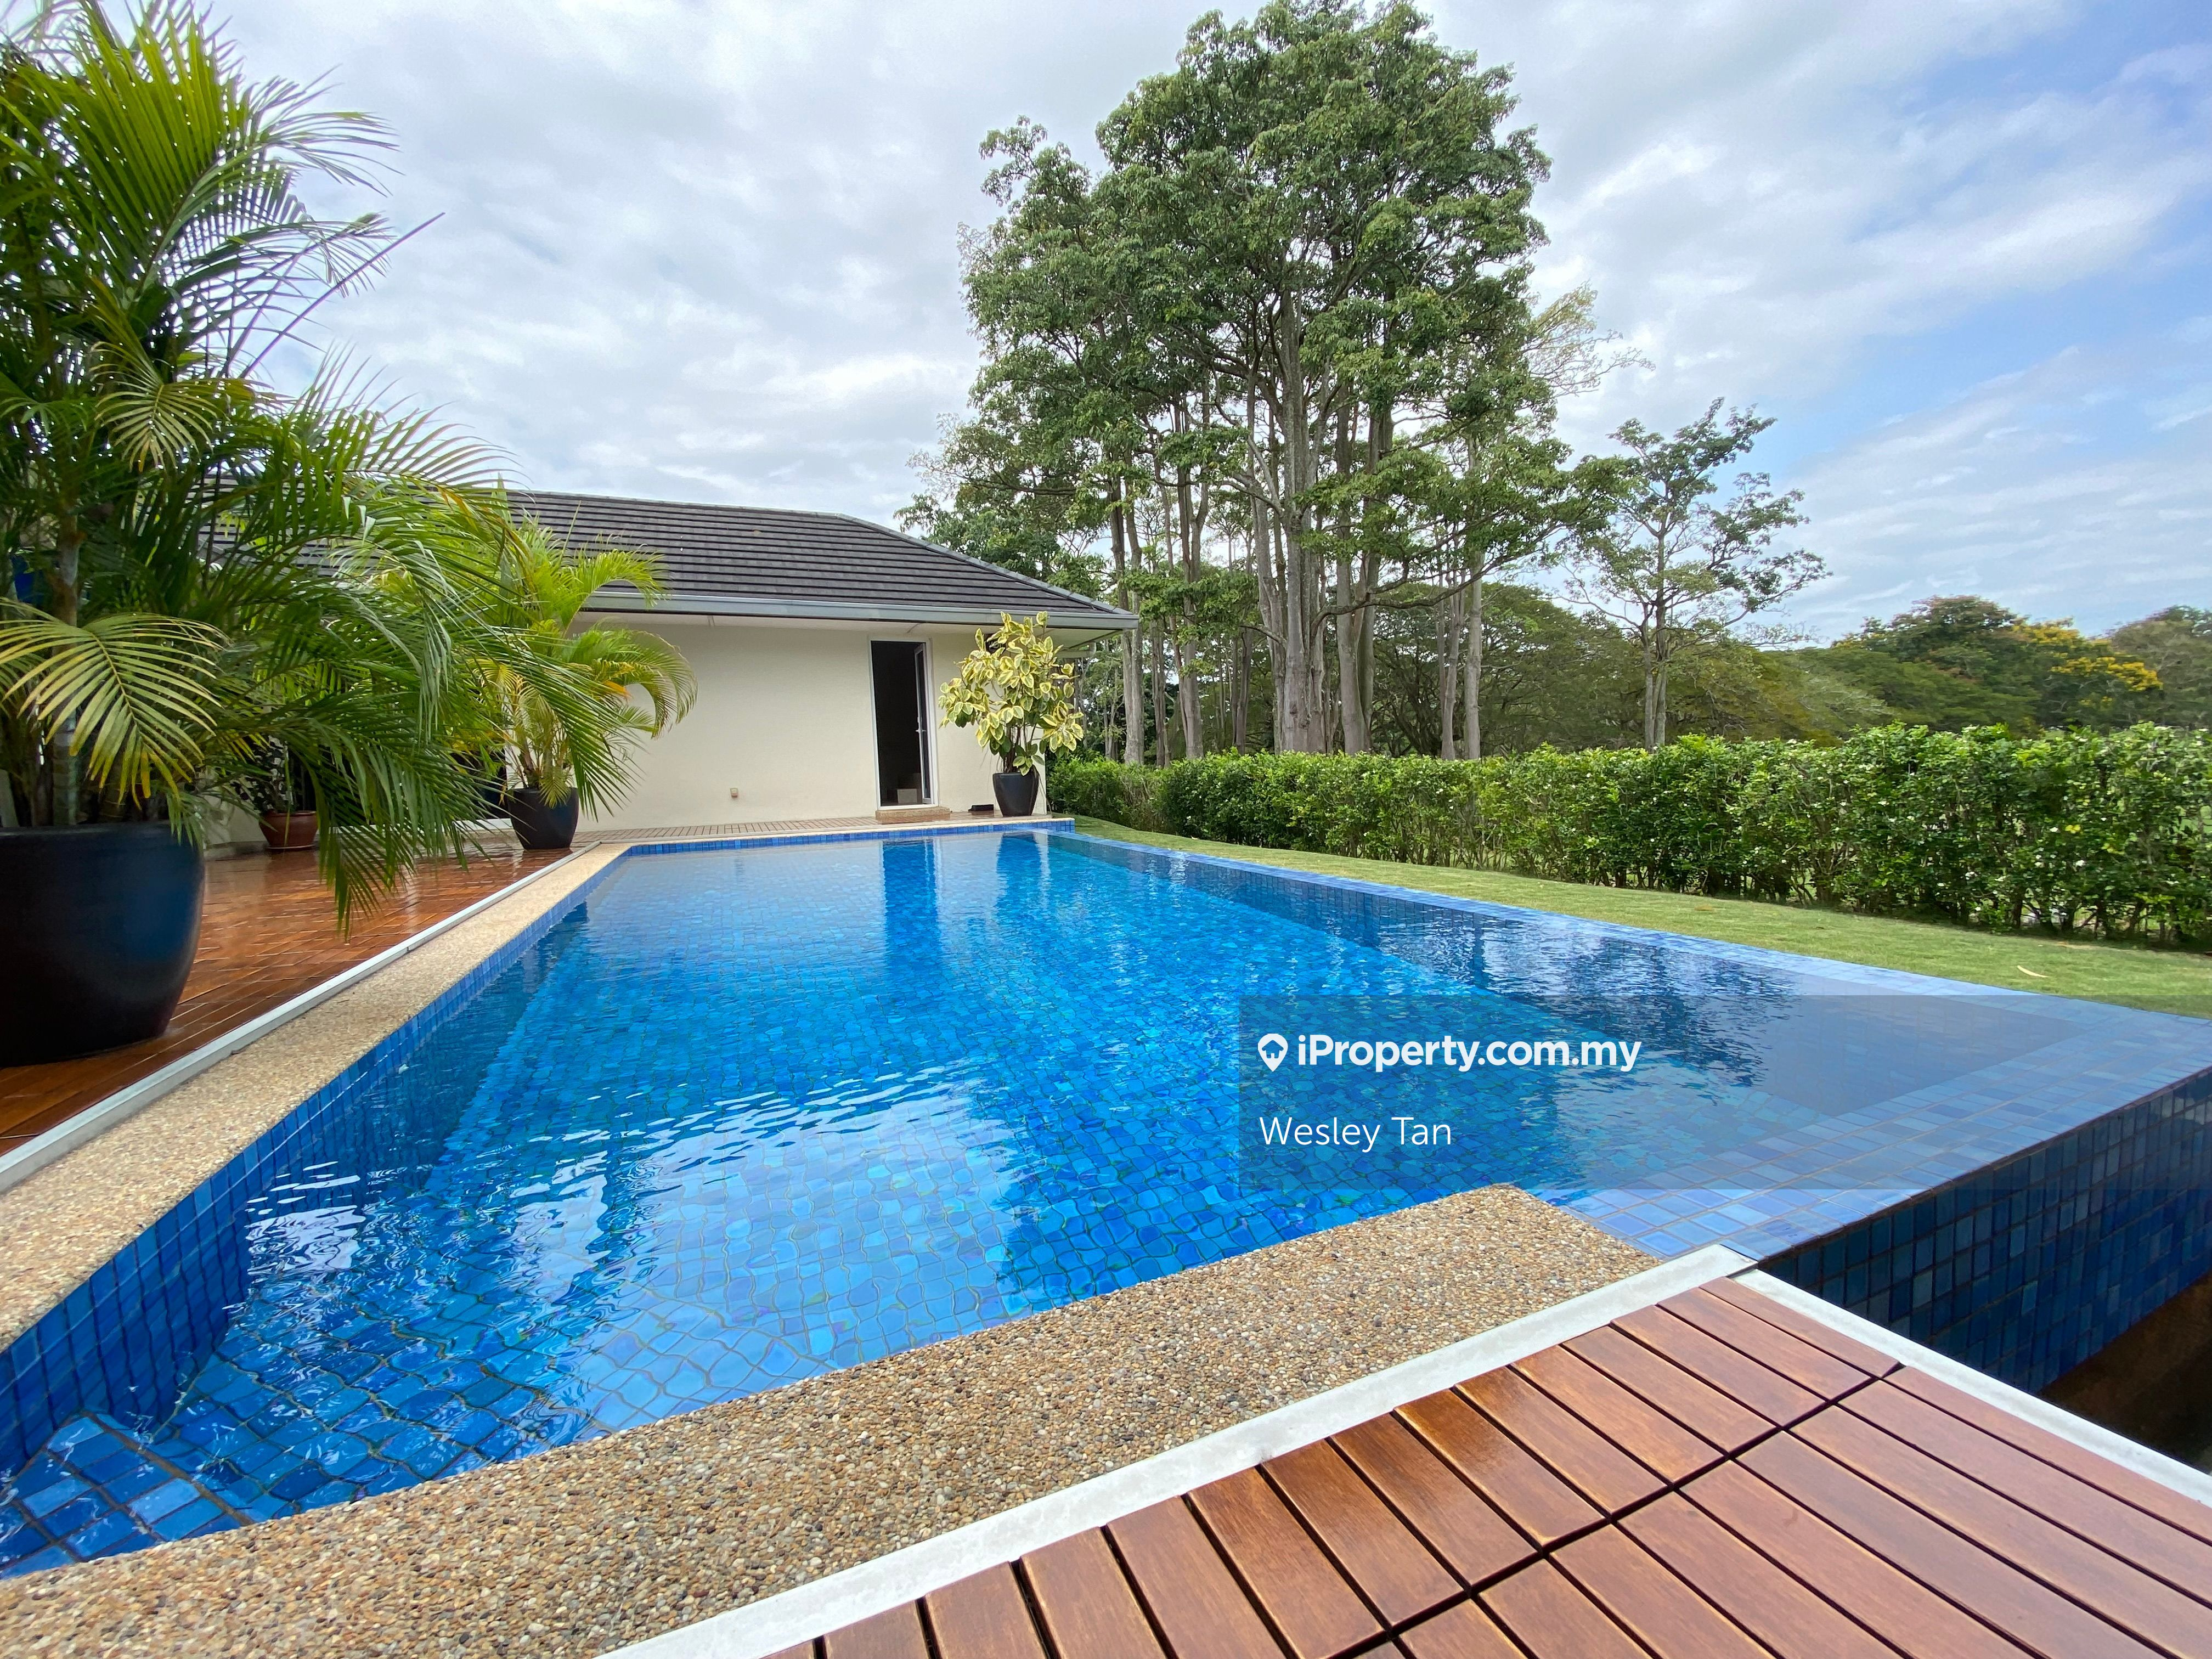 Tiara Golf Bungalow Resort House with Private Pool, Ayer Keroh